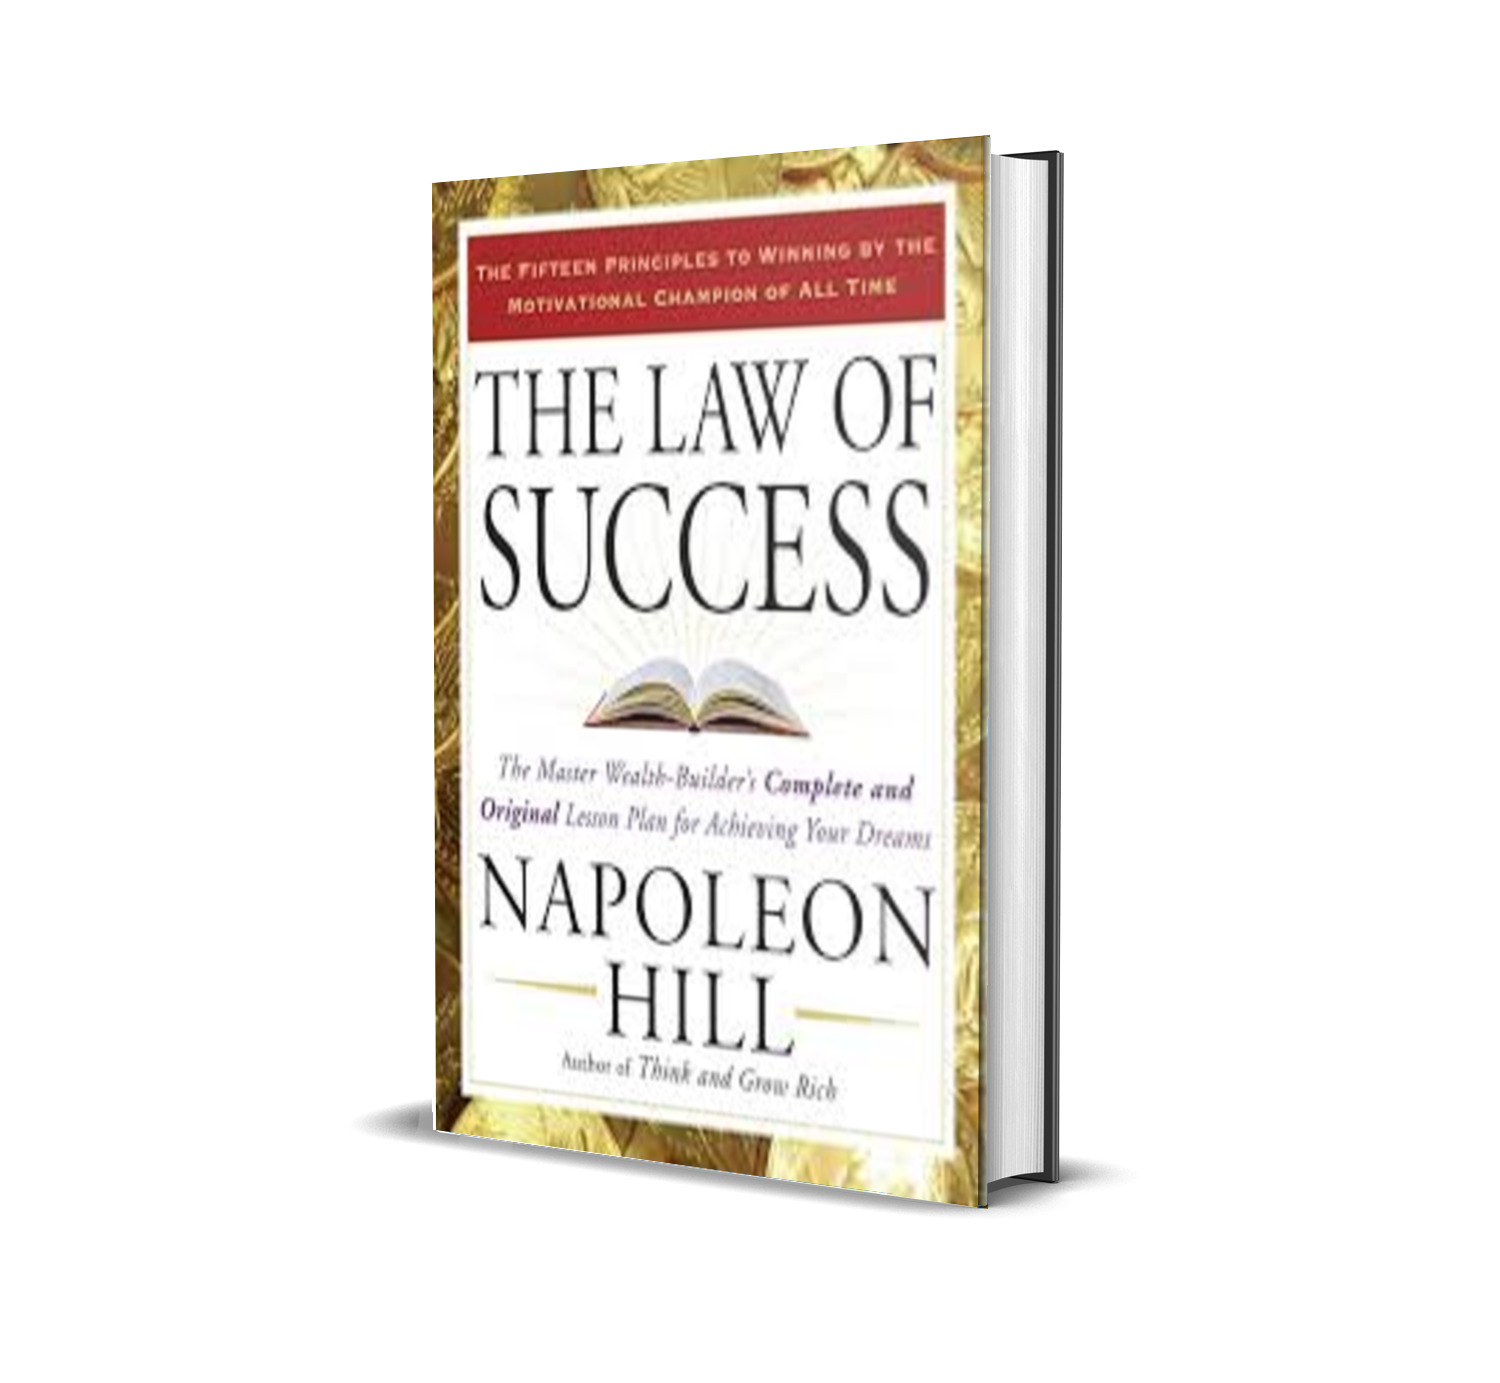 THE LAWS OF SUCCESS - NAPOLEON HILL